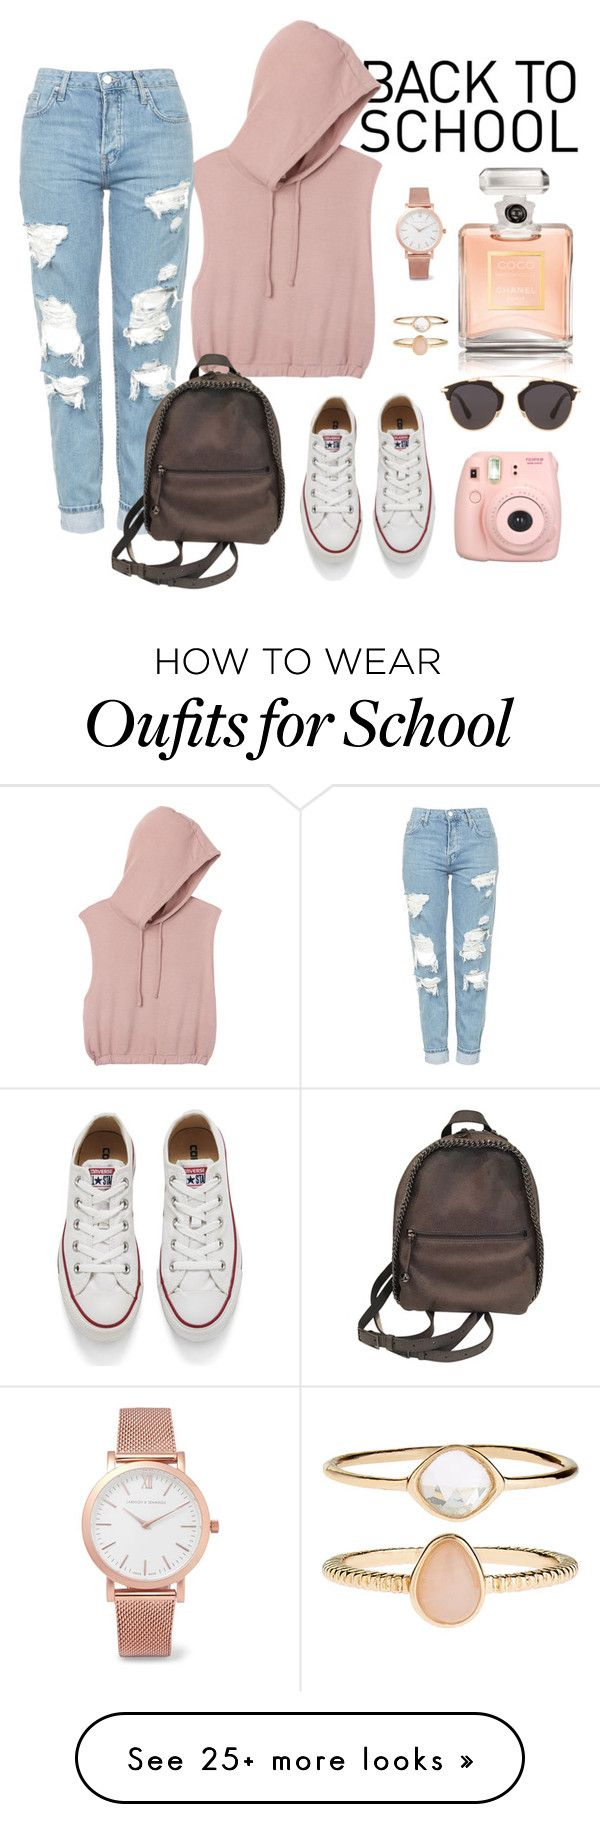 """""""Back to school"""" by alicka128 on Polyvore featuring RVCA, Topshop, STELLA McCARTNEY, Converse, Fujifilm, Christian Dior, Accessorize, Larsson & Jennings and Chanel"""